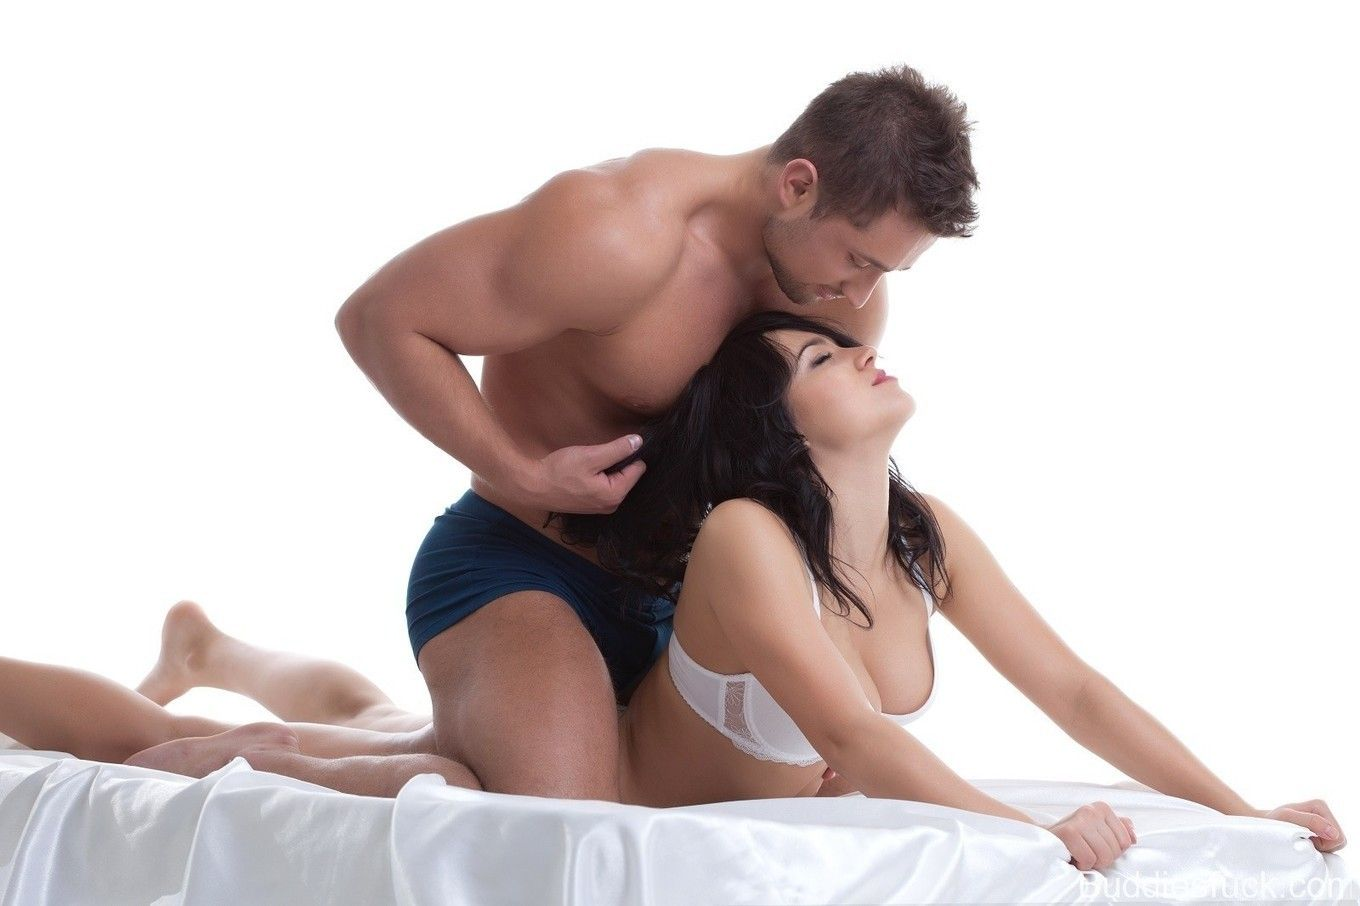 Find sex partners for free